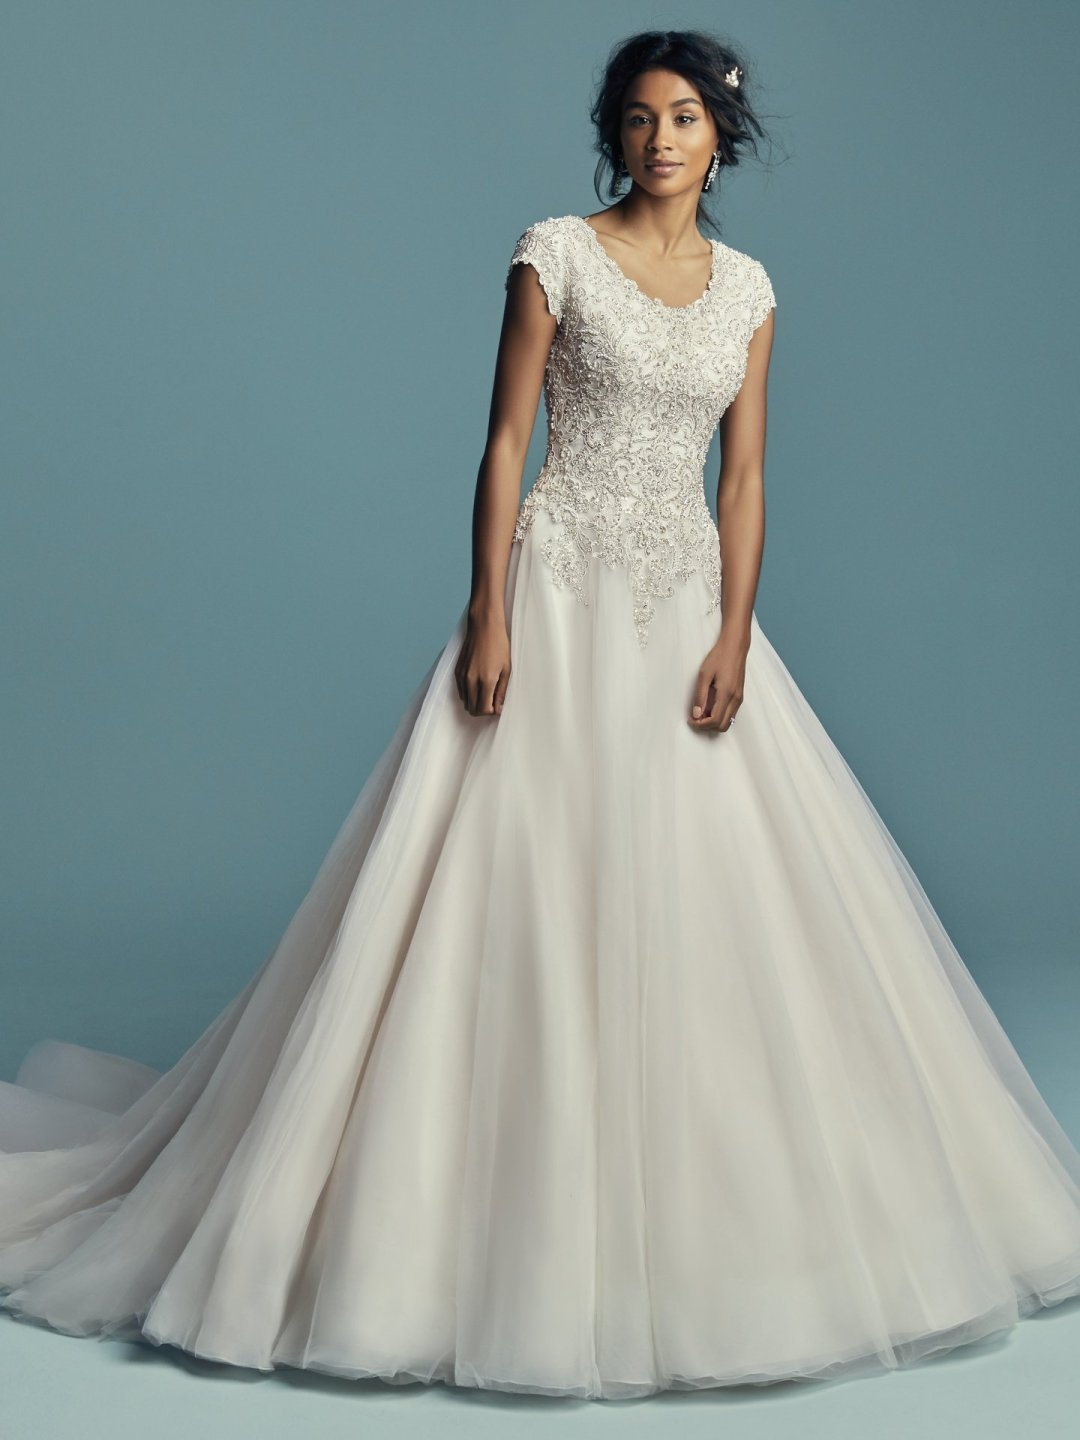 25 Modest Ball Gown Wedding Dresses - 15